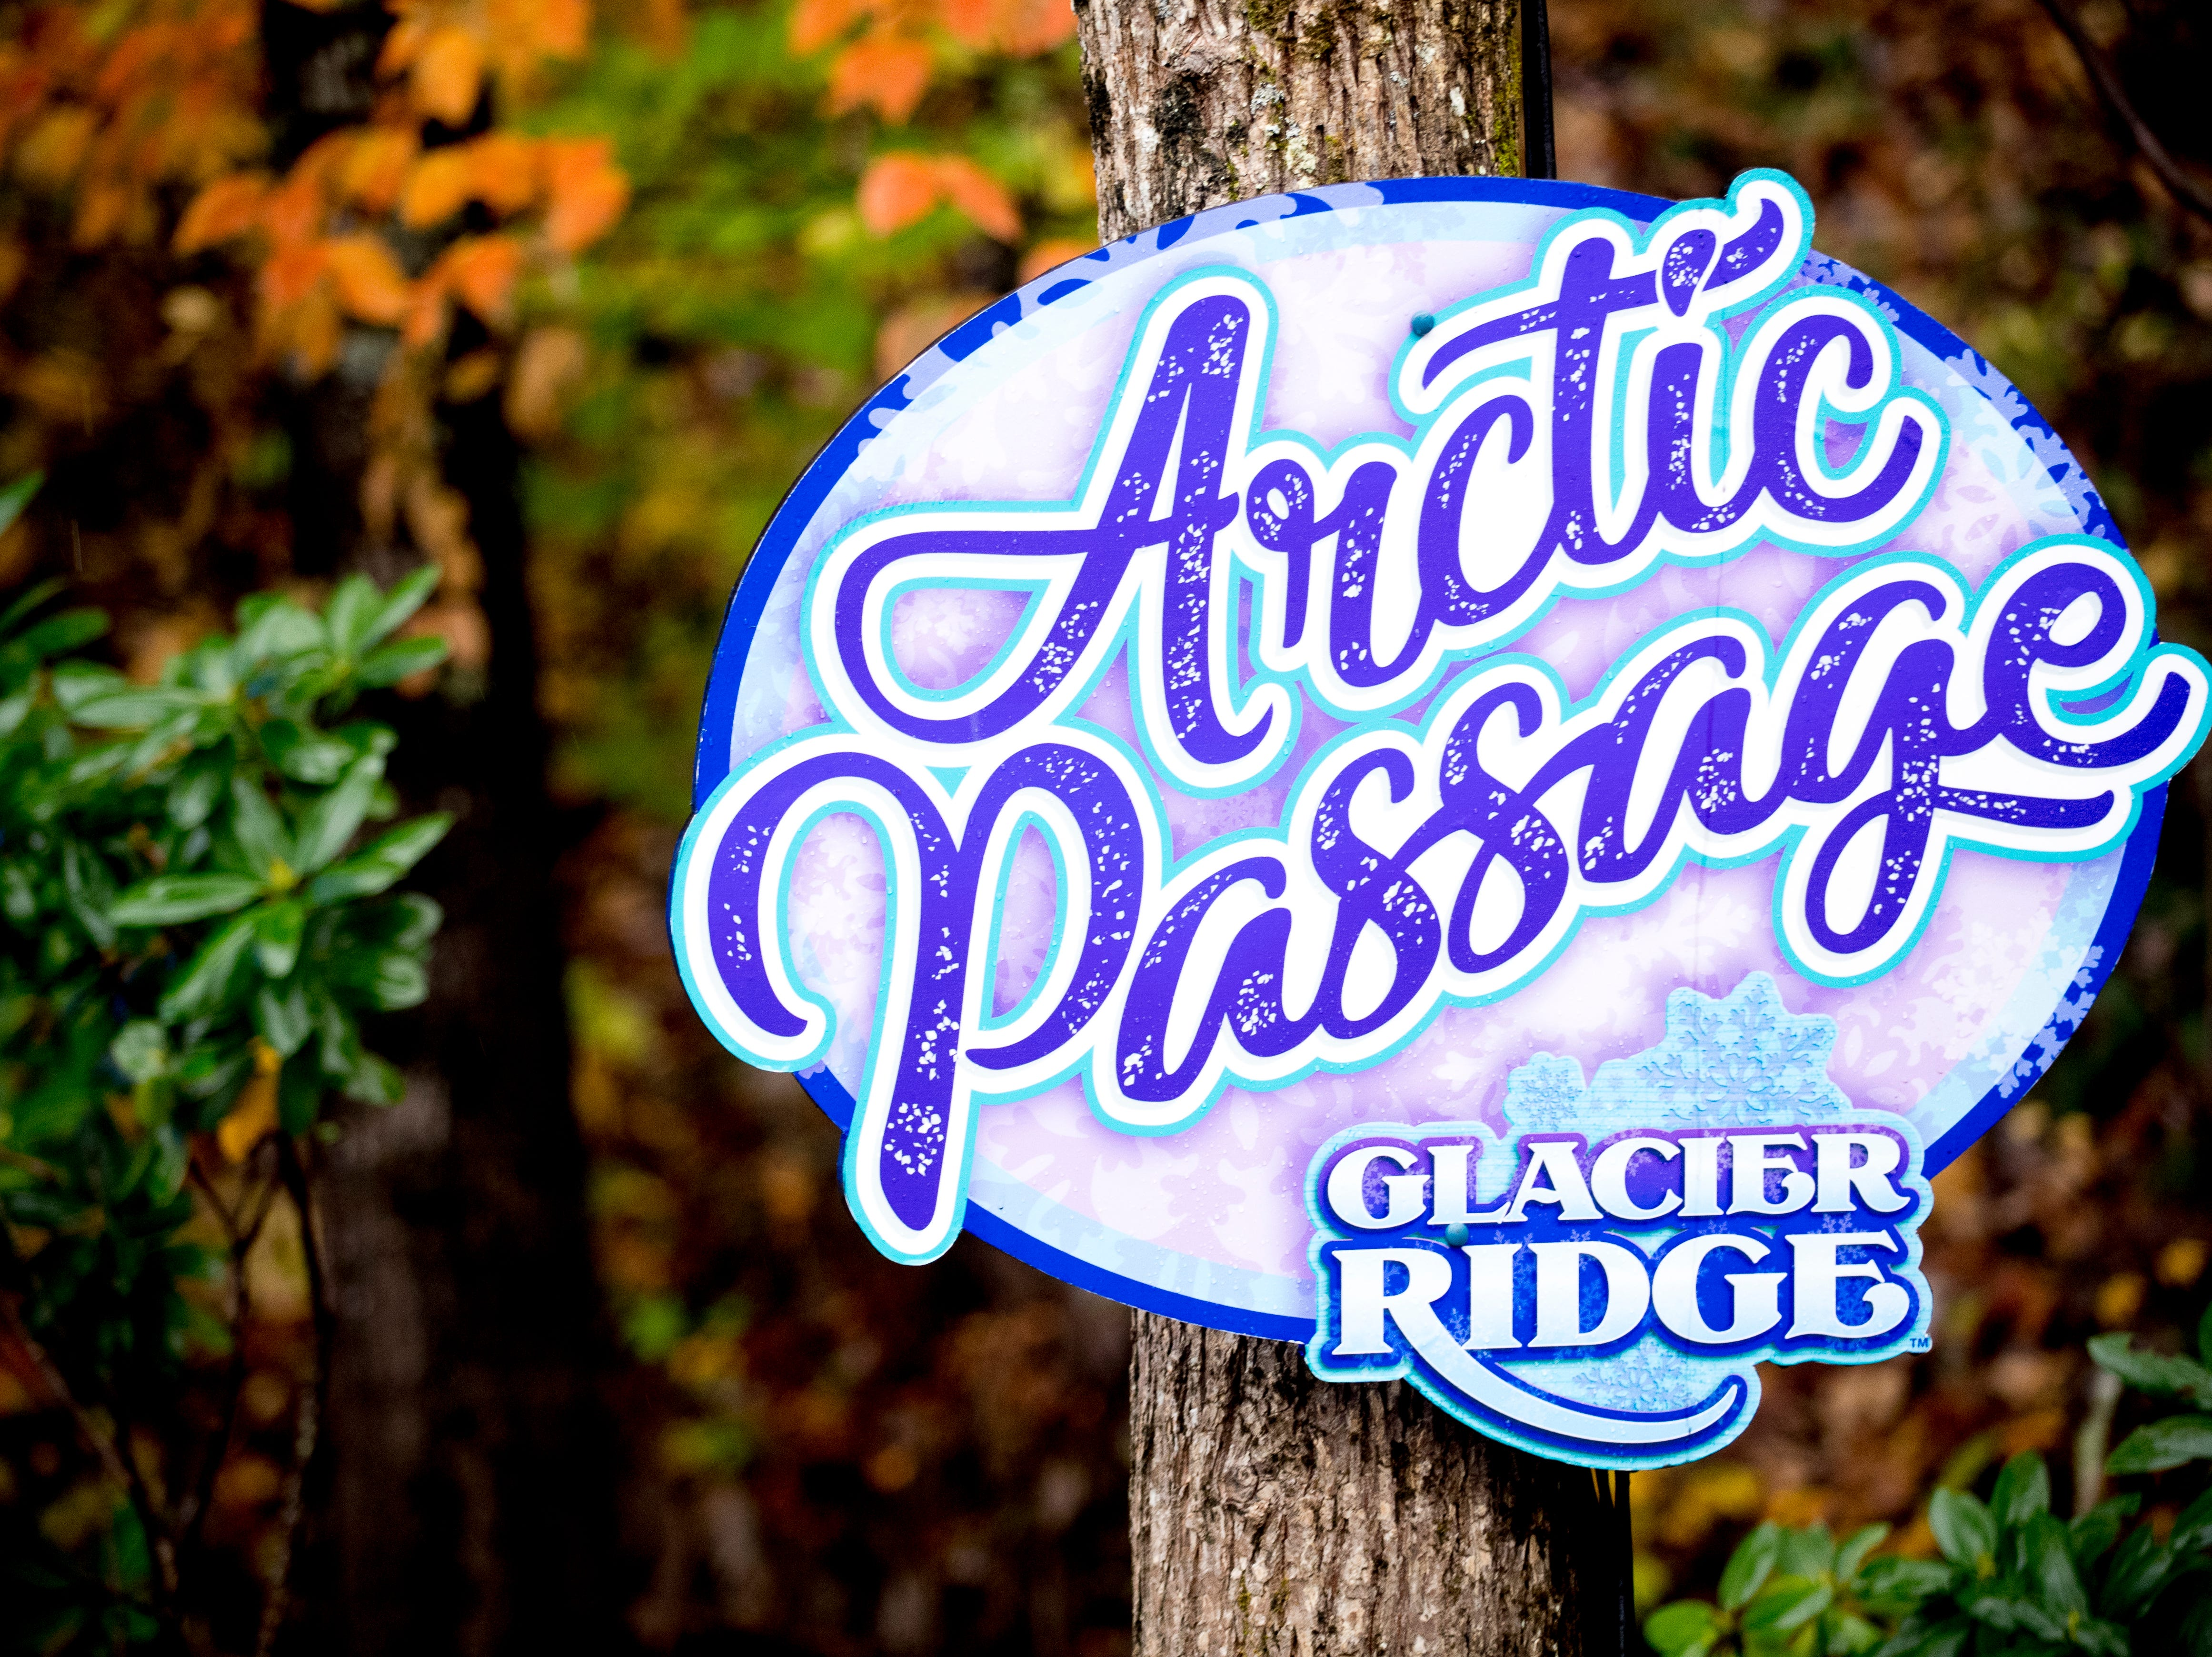 The sign for the Arctic Passage light display tunnel during media day for a behind-the-scenes look of the Glacier Ridge light display at Dollywood in Pigeon Forge, Tennessee on Friday, November 9, 2018. Glacier Ridge features several new lighting displays, including a 50-ft. tall animated tree, the all new Arctic Passage and the Northern Lights.